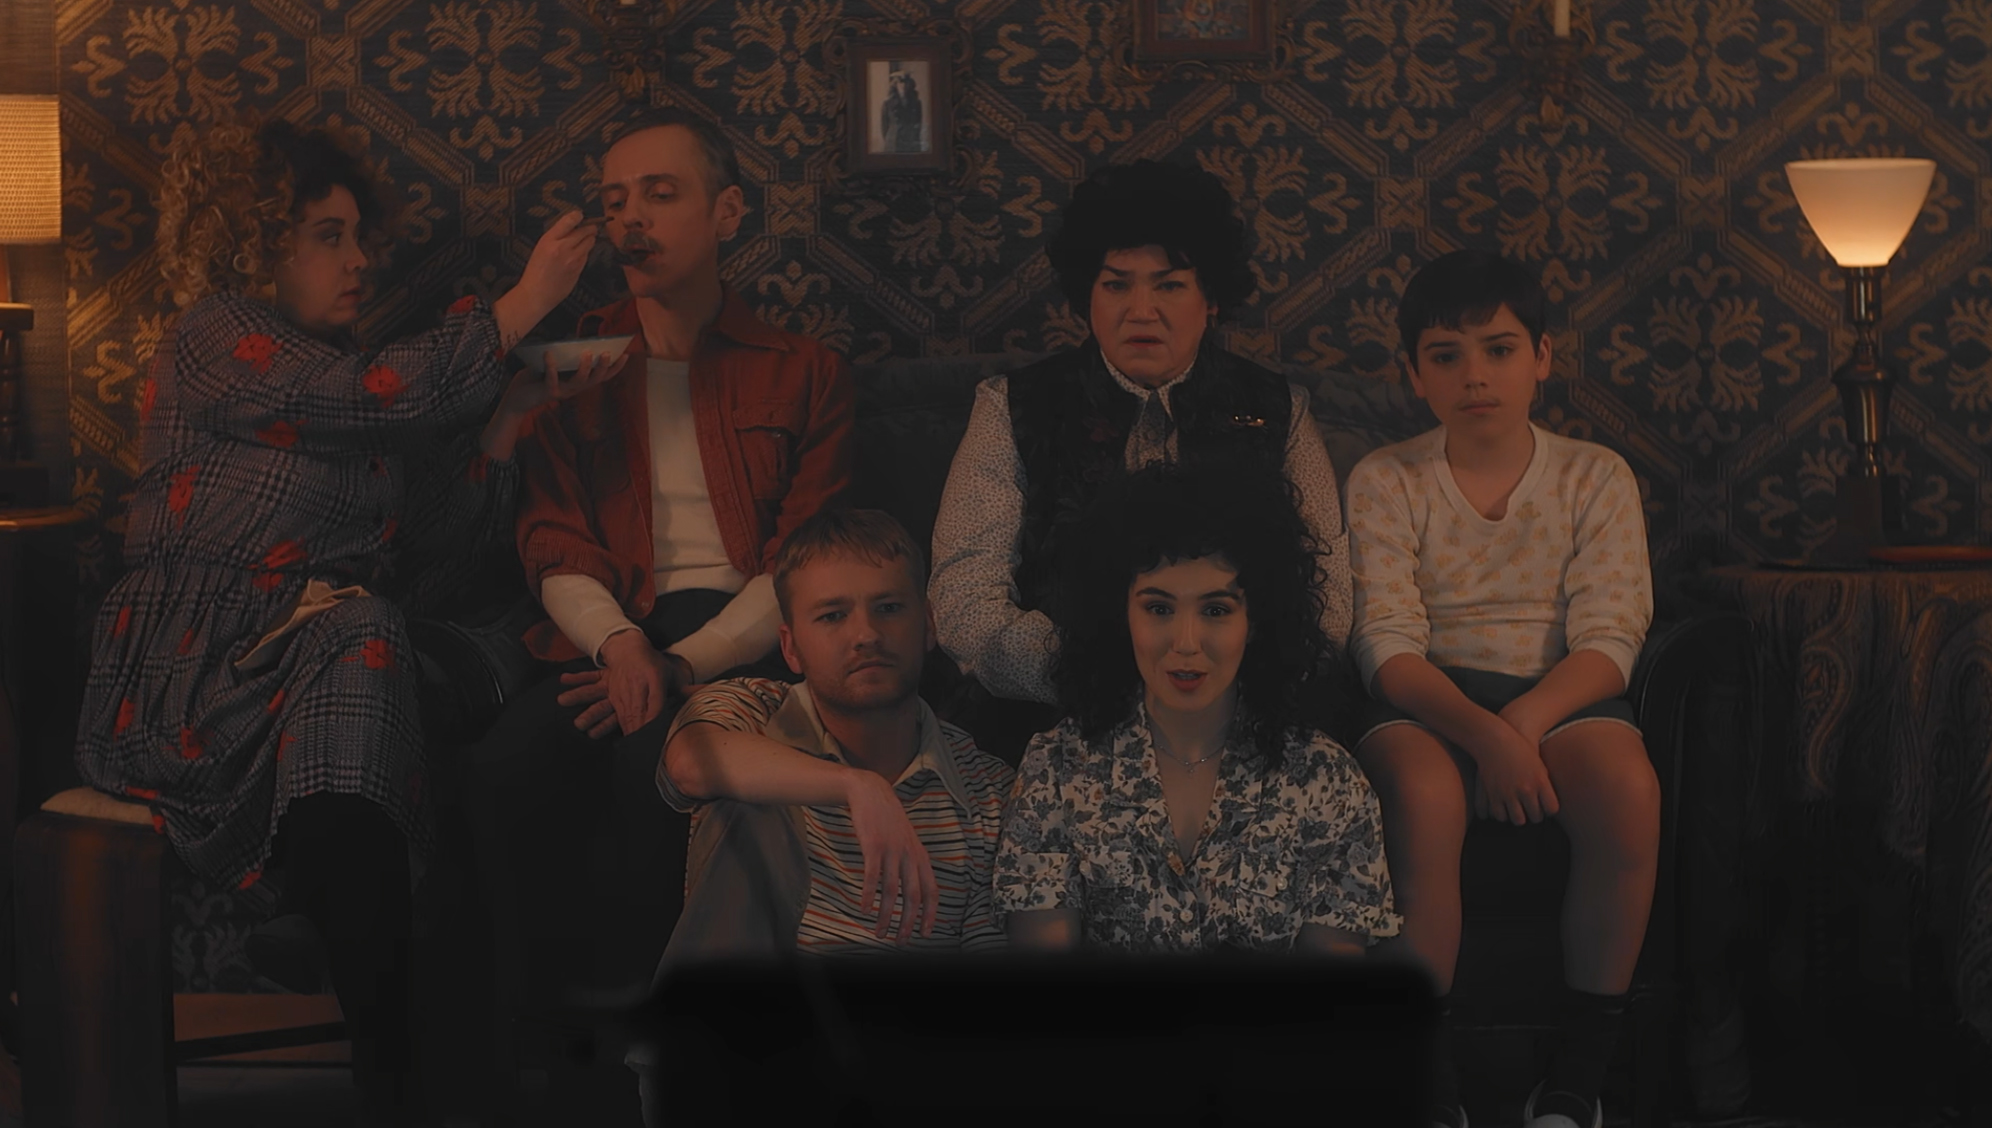 [SXSW '21] 'Potato Dreams of America' review : Coming out story about a boy named Potato